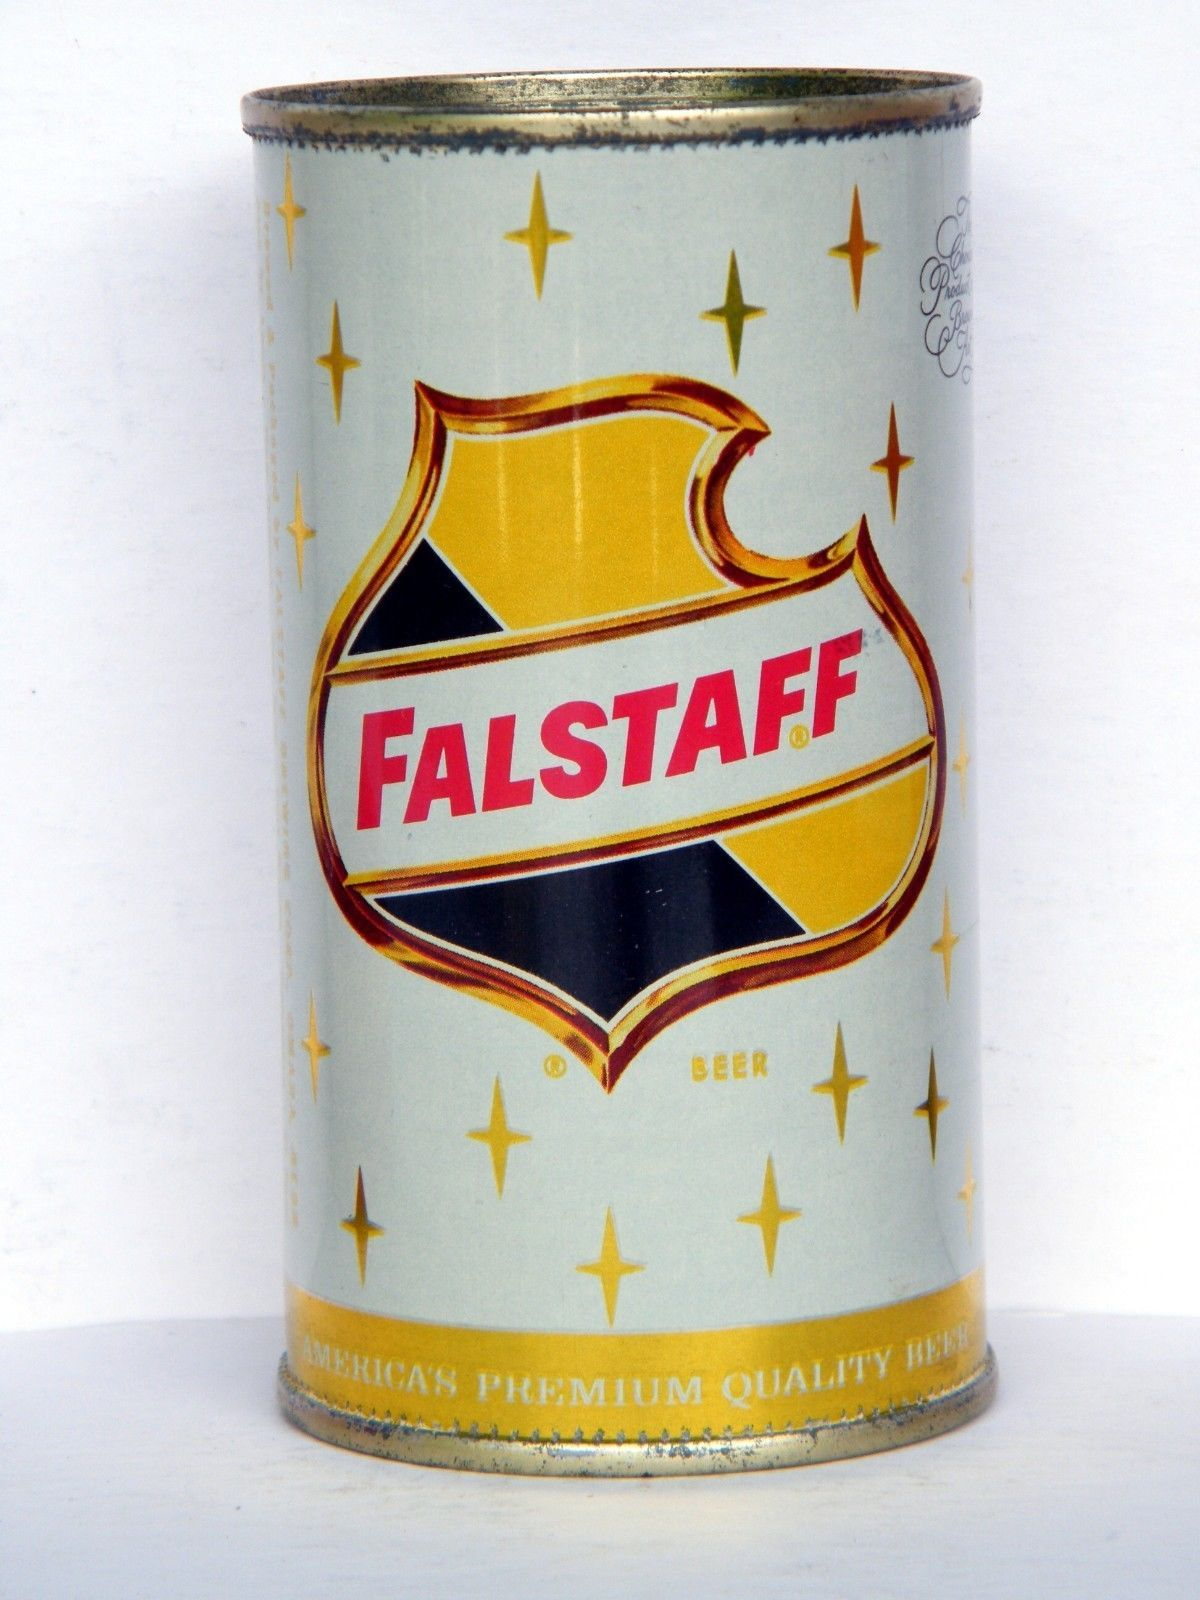 FALSTAFF Flat Top Beer Can, Omaha, Nebraska | eBay | Beer ...